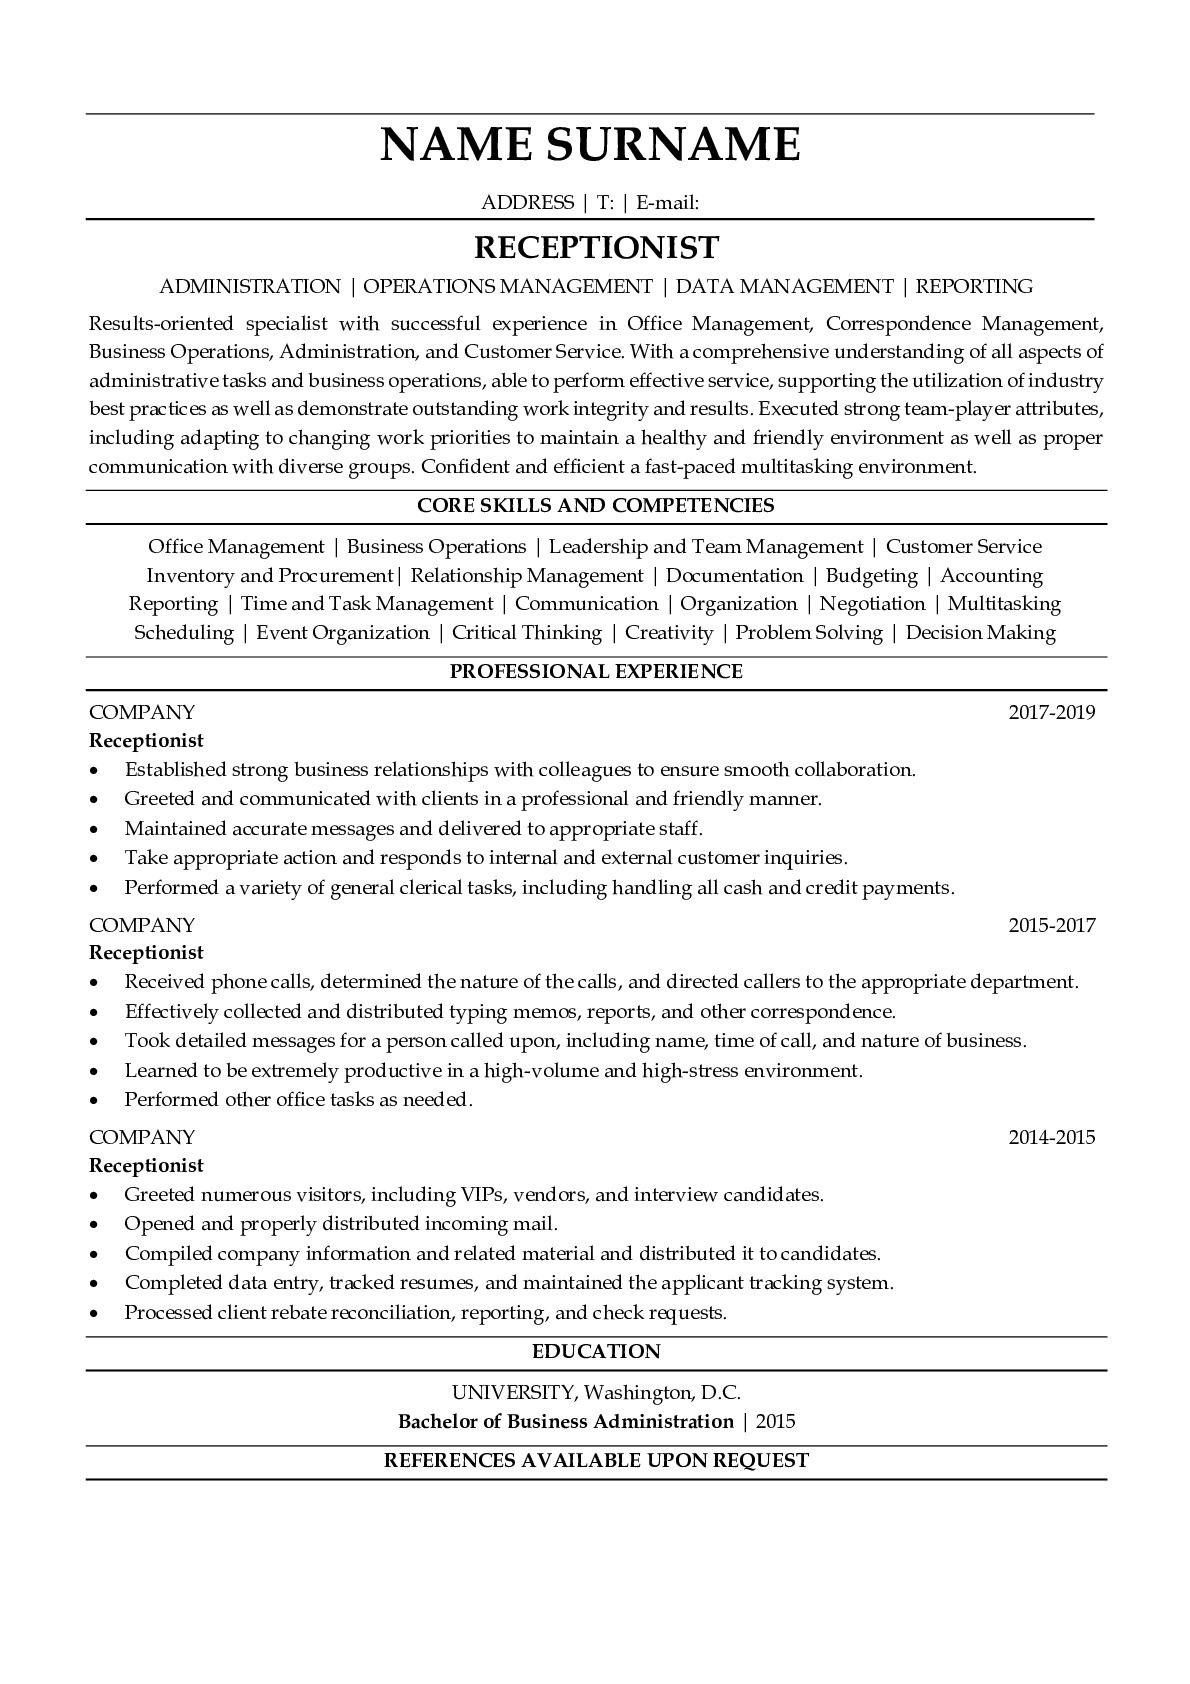 Resume for Receptionist